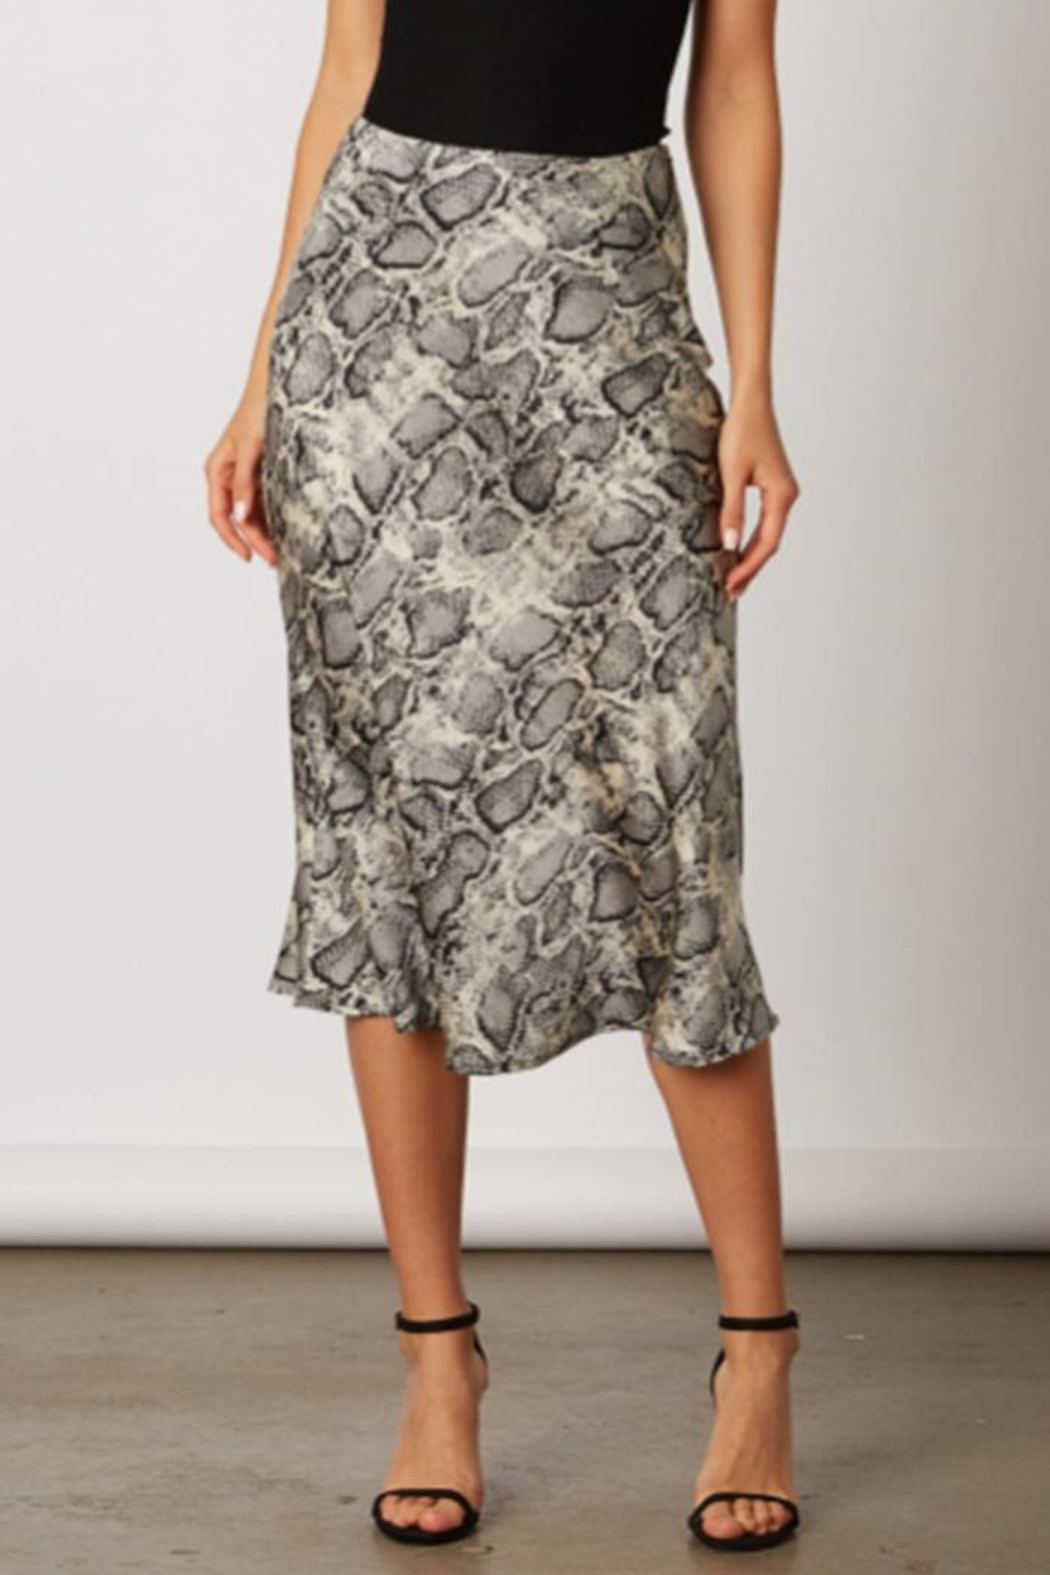 20d779710 Cotton Candy LA Snake Print Skirt from New York by Dor L'Dor ...